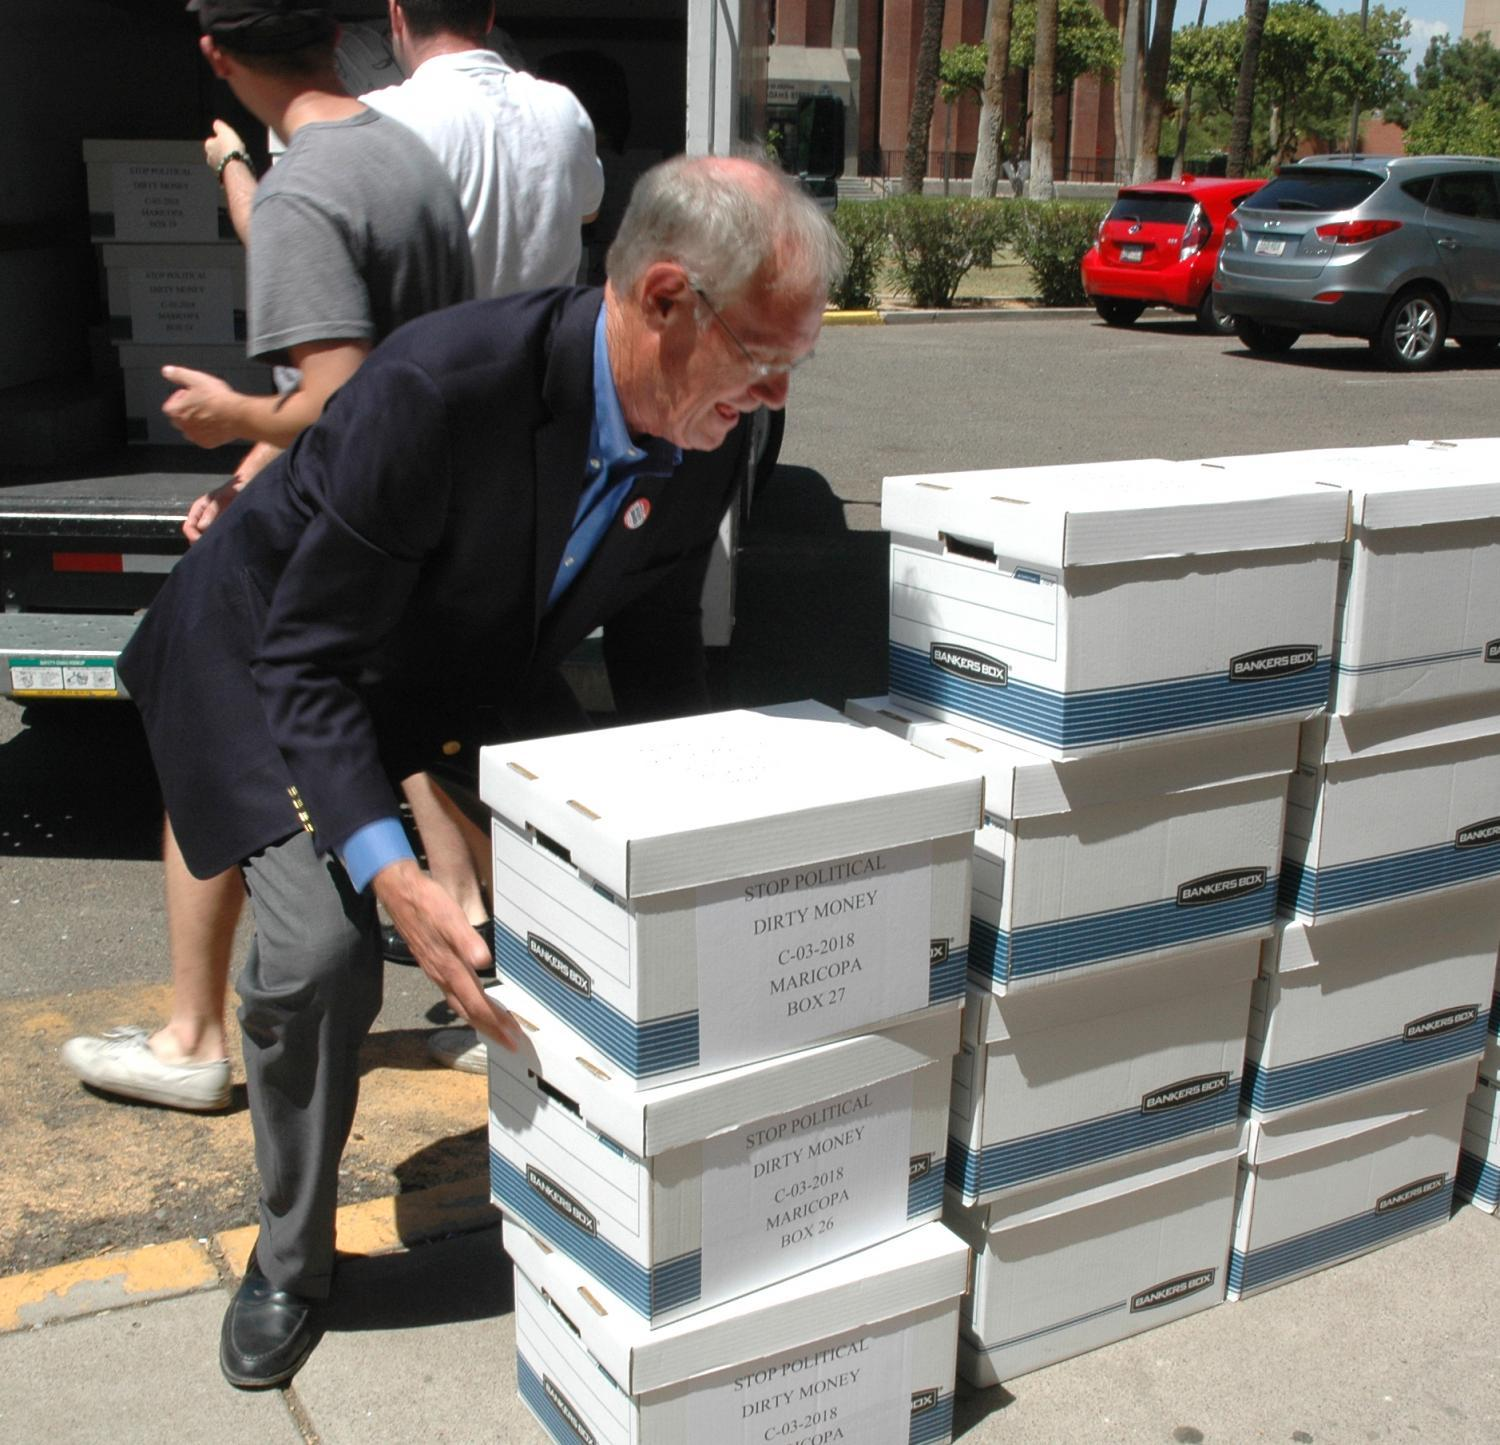 Terry Goddard bends down to lift a box of signatures